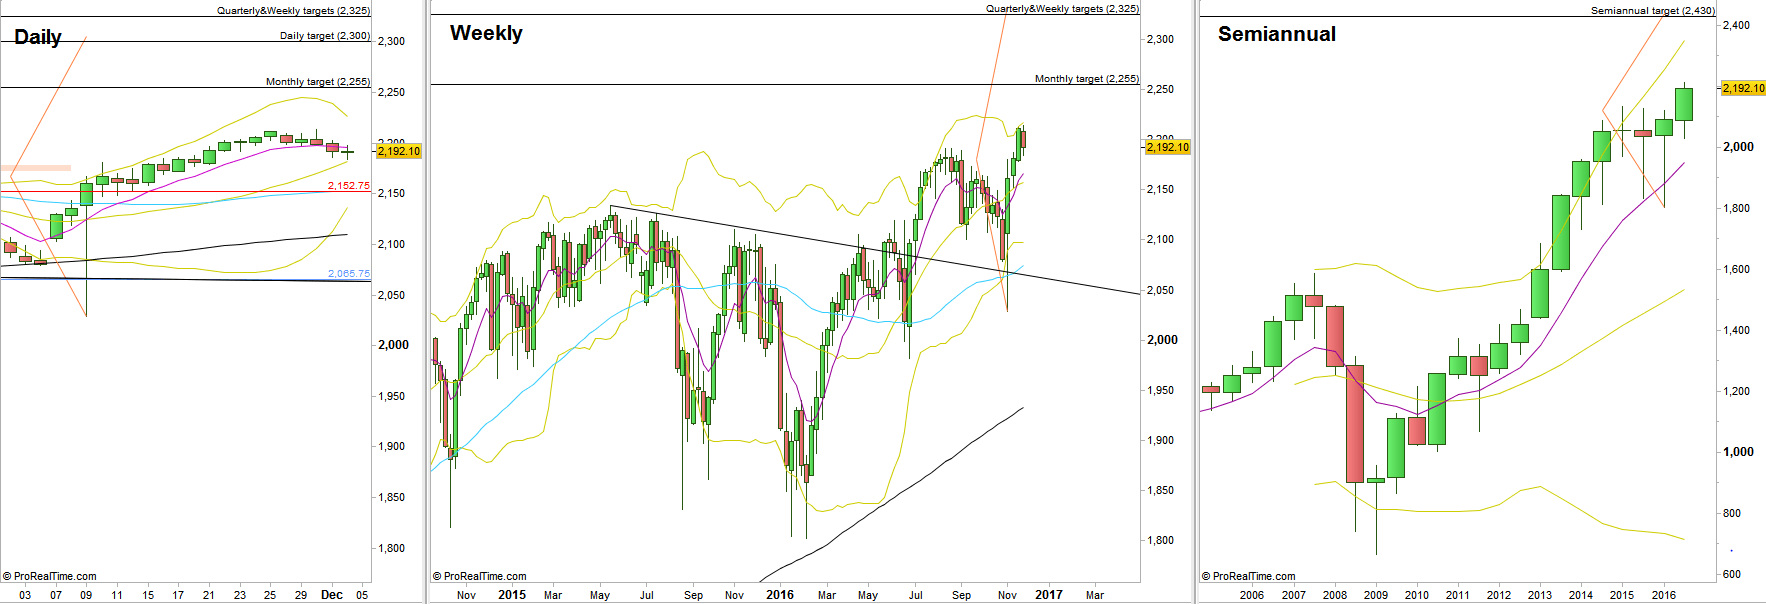 S&P Futures, Daily, Weekly and Semiannual charts. (at the courtesy of prorealtime.com)